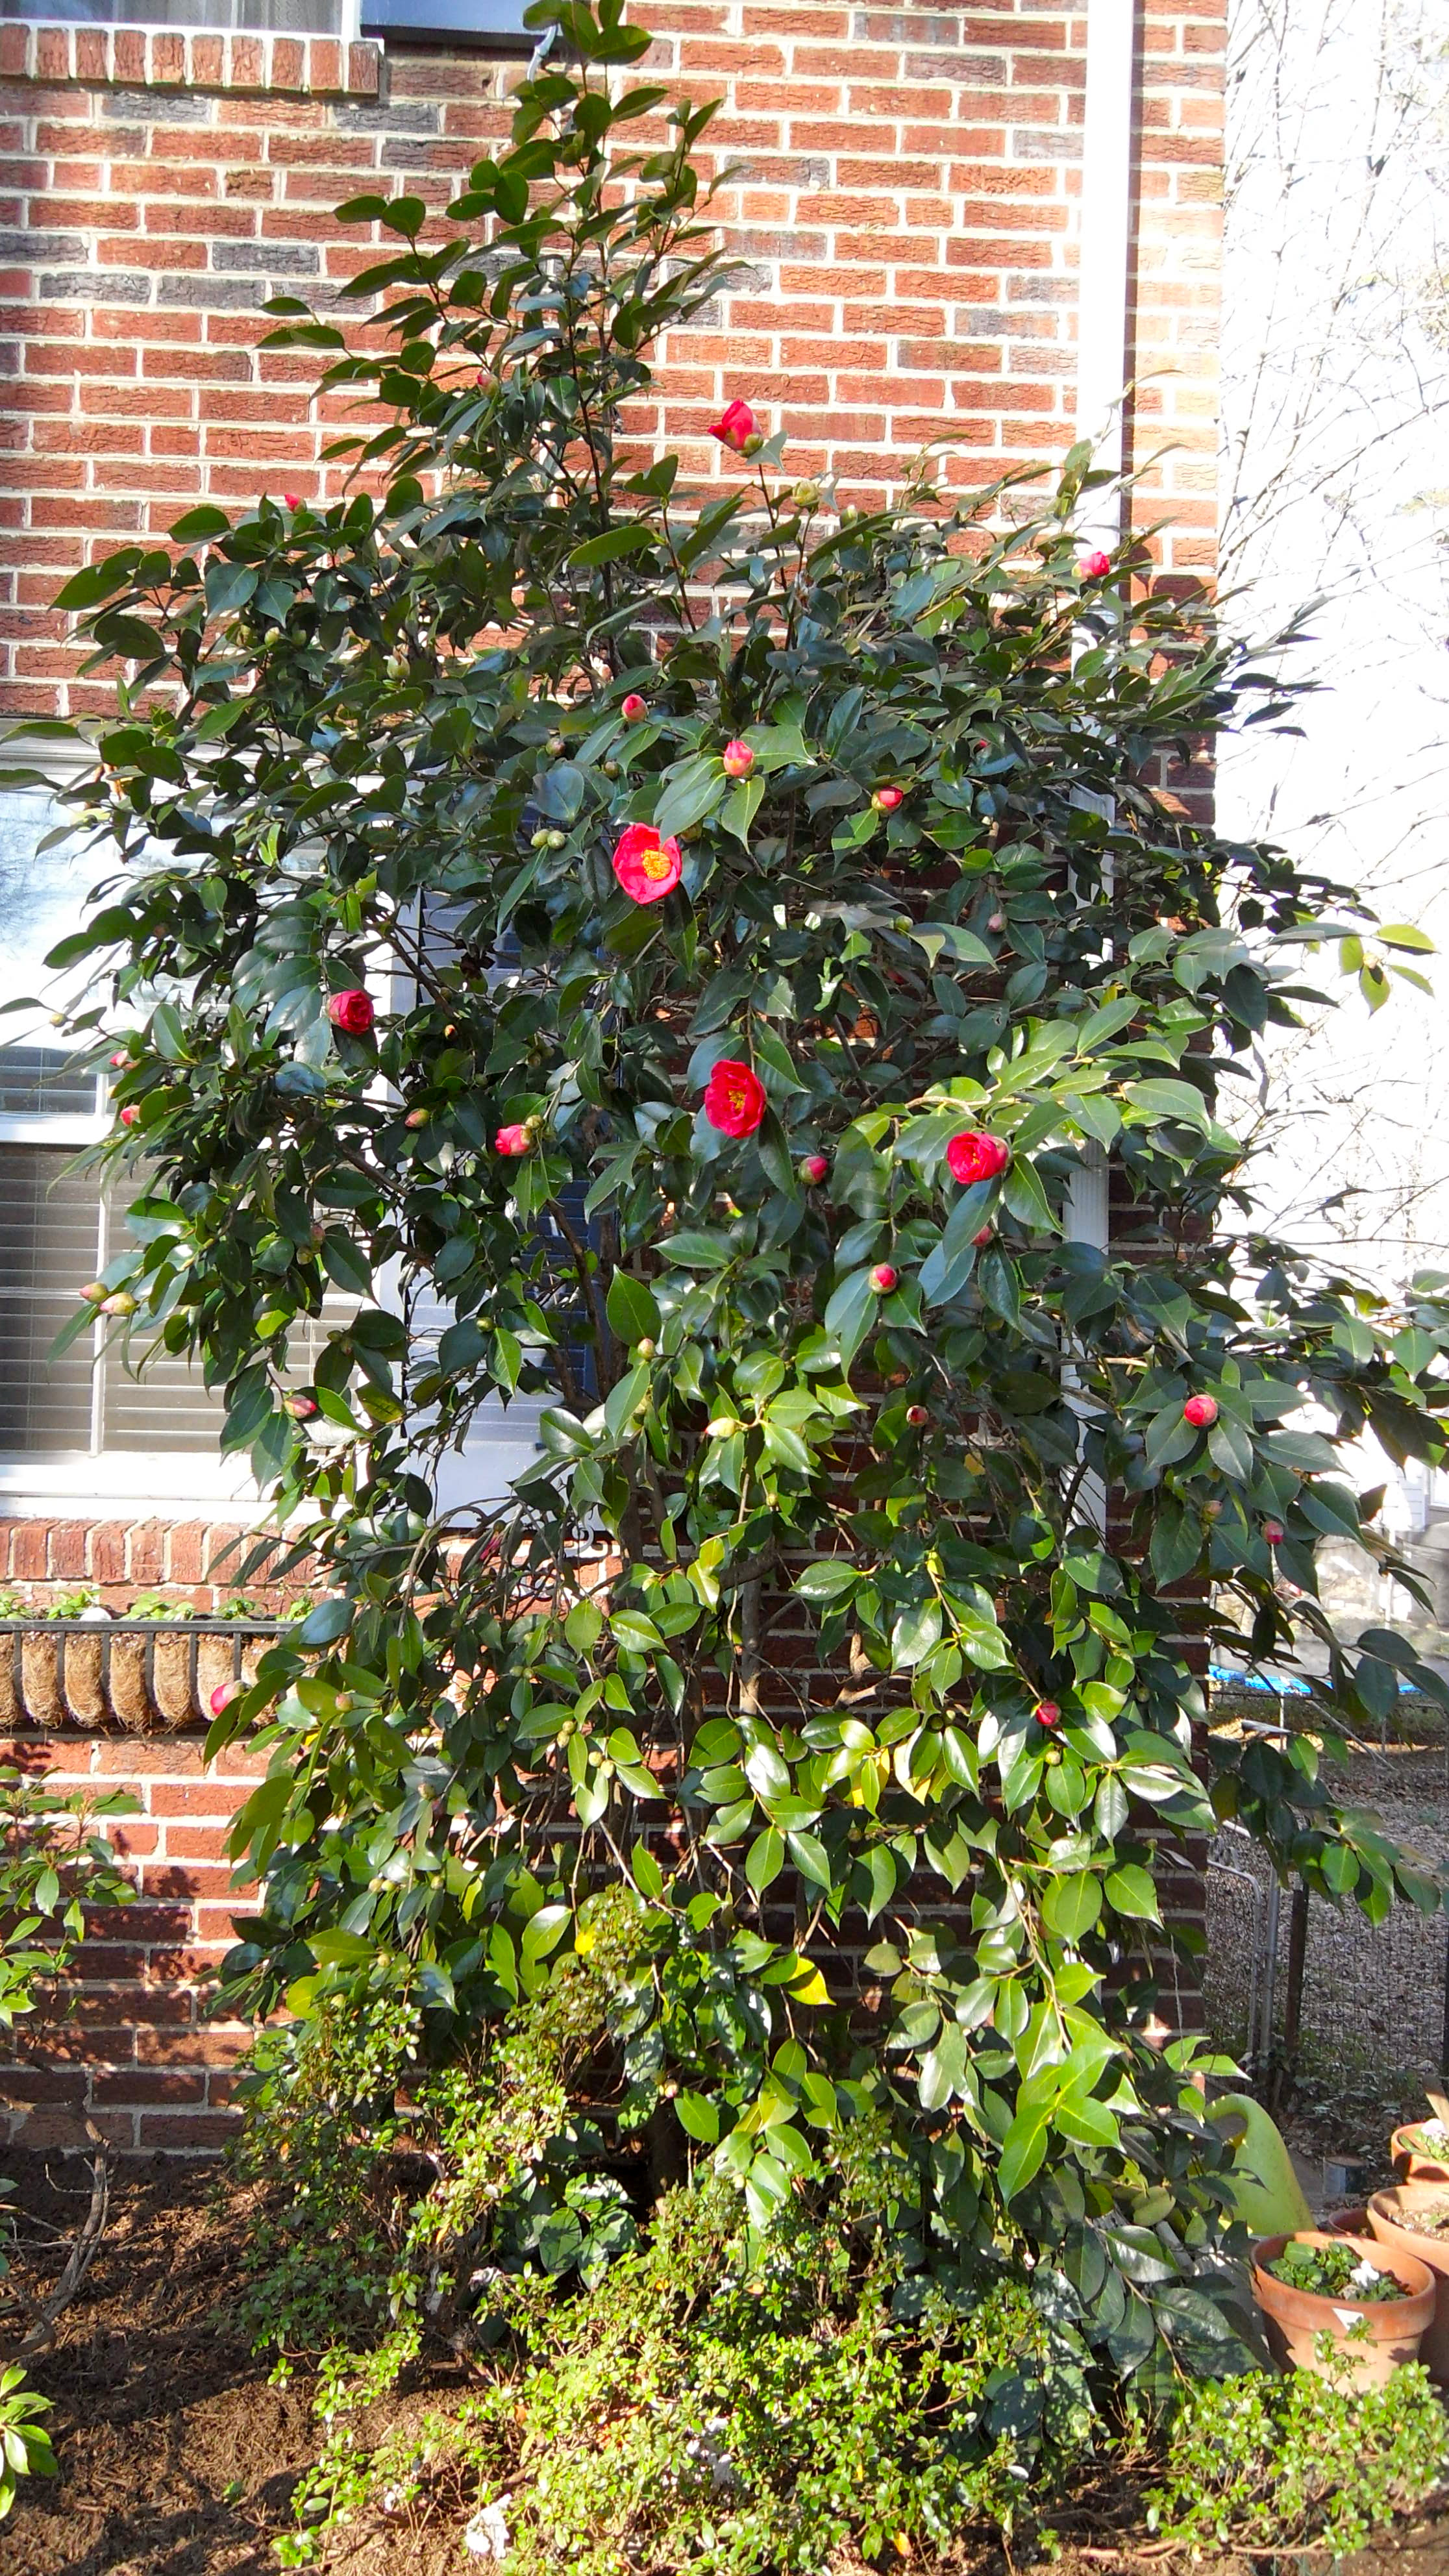 Camillia Bush in Bloom